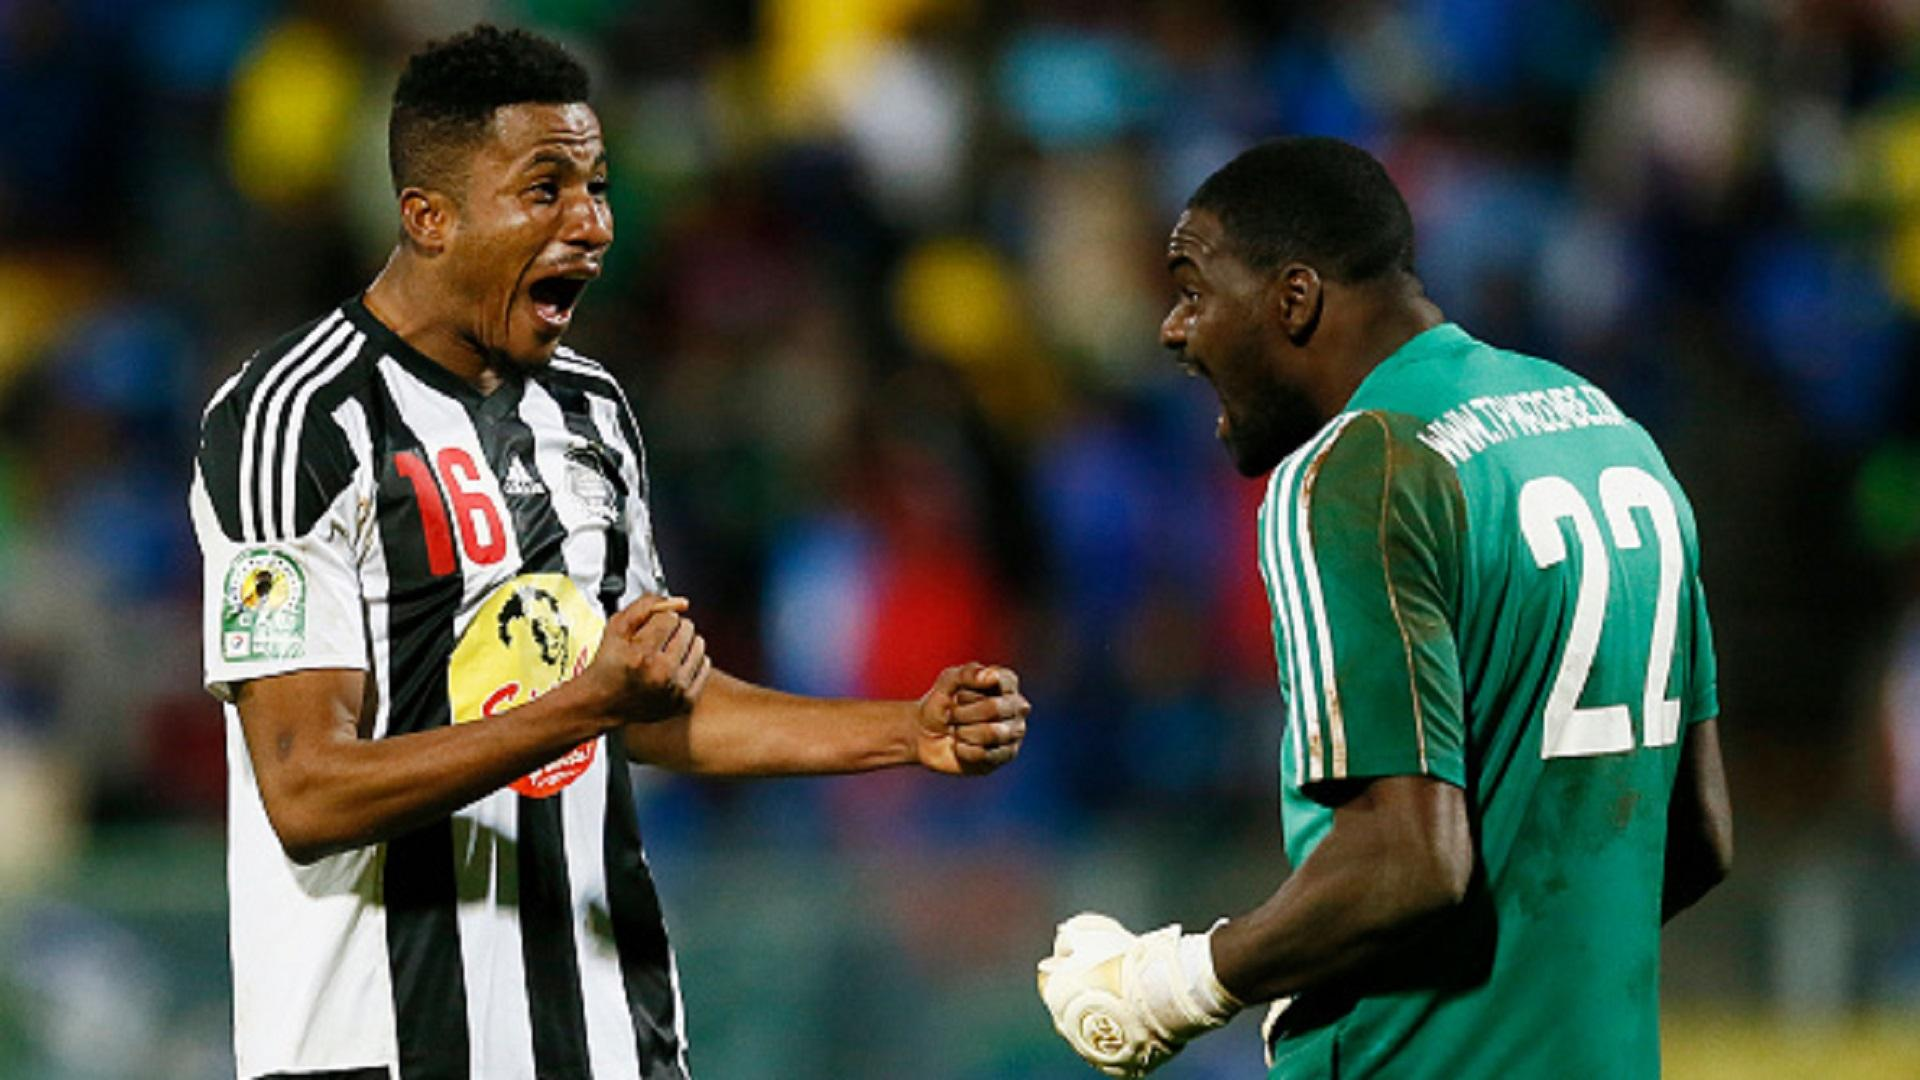 WATCH: How TP Mazembe silenced Ismaily | Sporting News